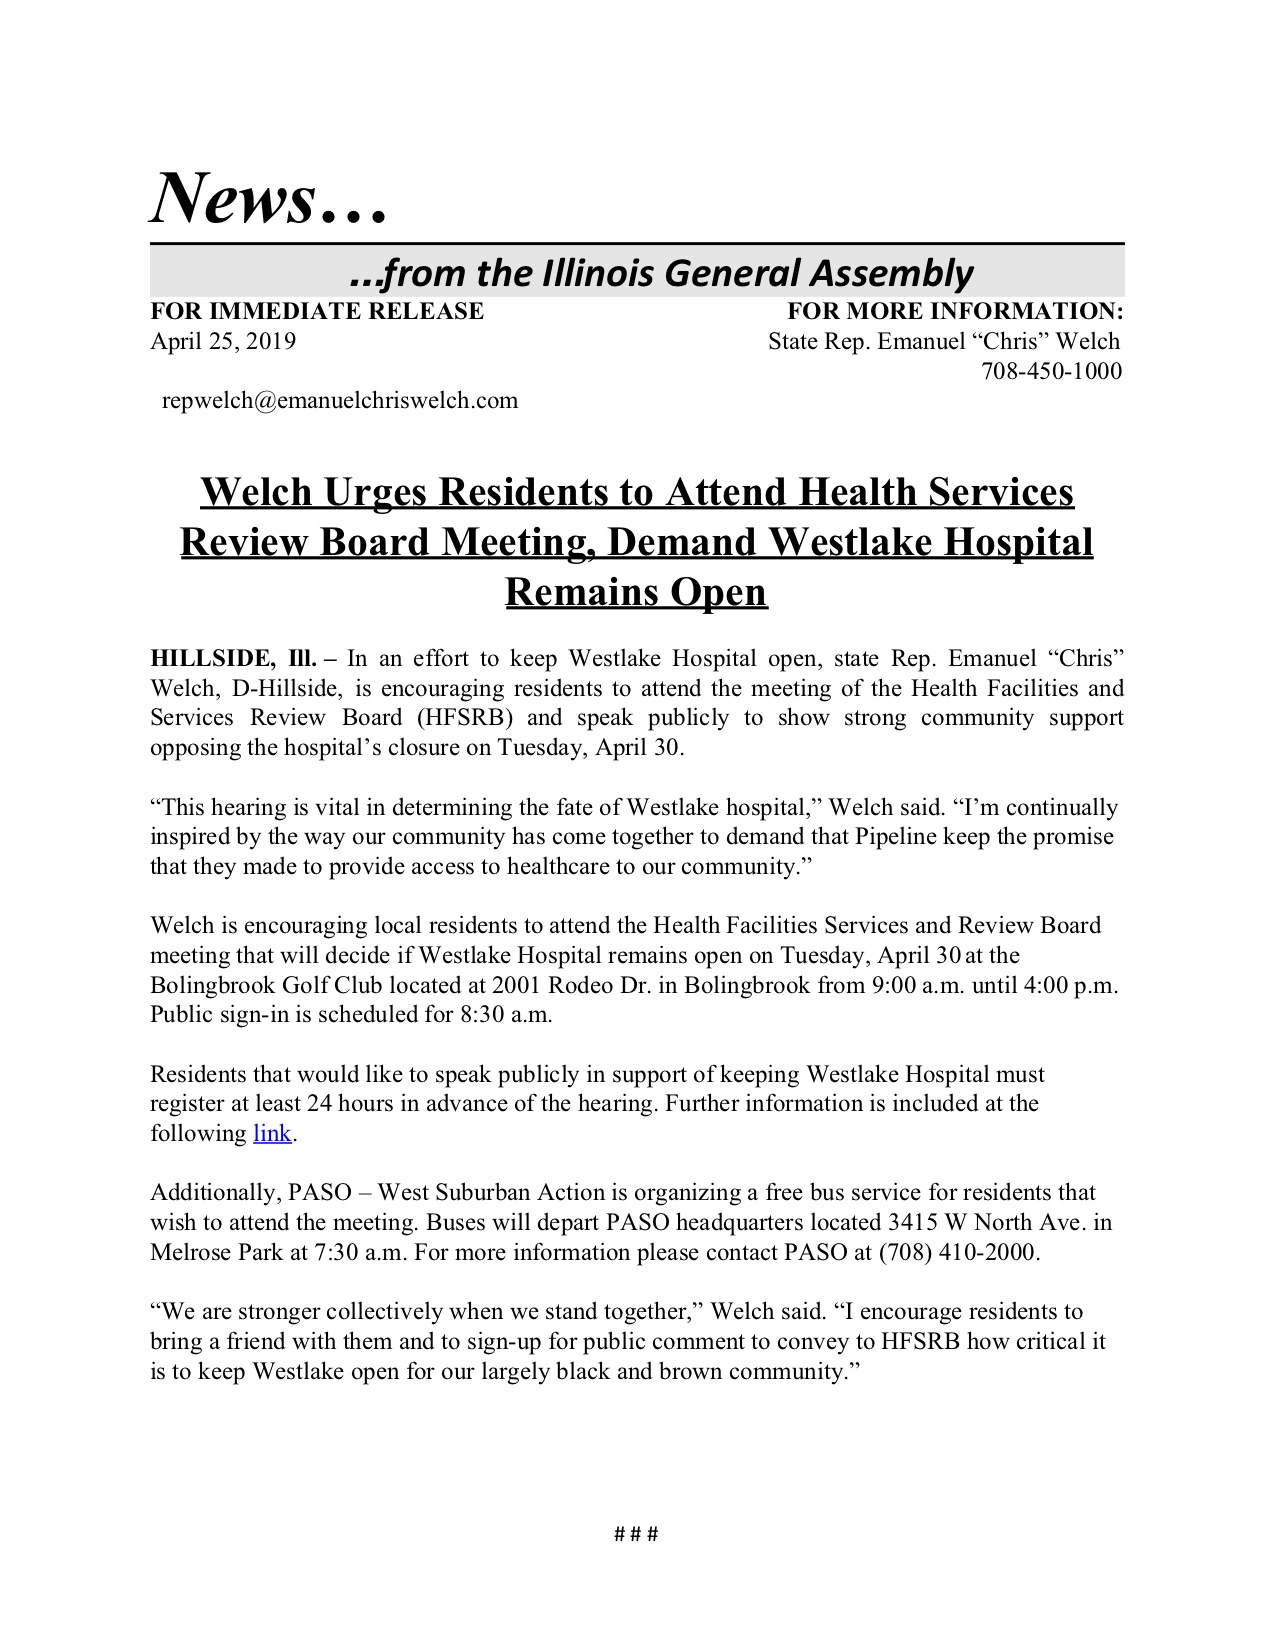 Welch Urges Residents to Attend Health Services Review Board Meeting, Demand Westlake Hospital Remains Open  (April 25, 2019)